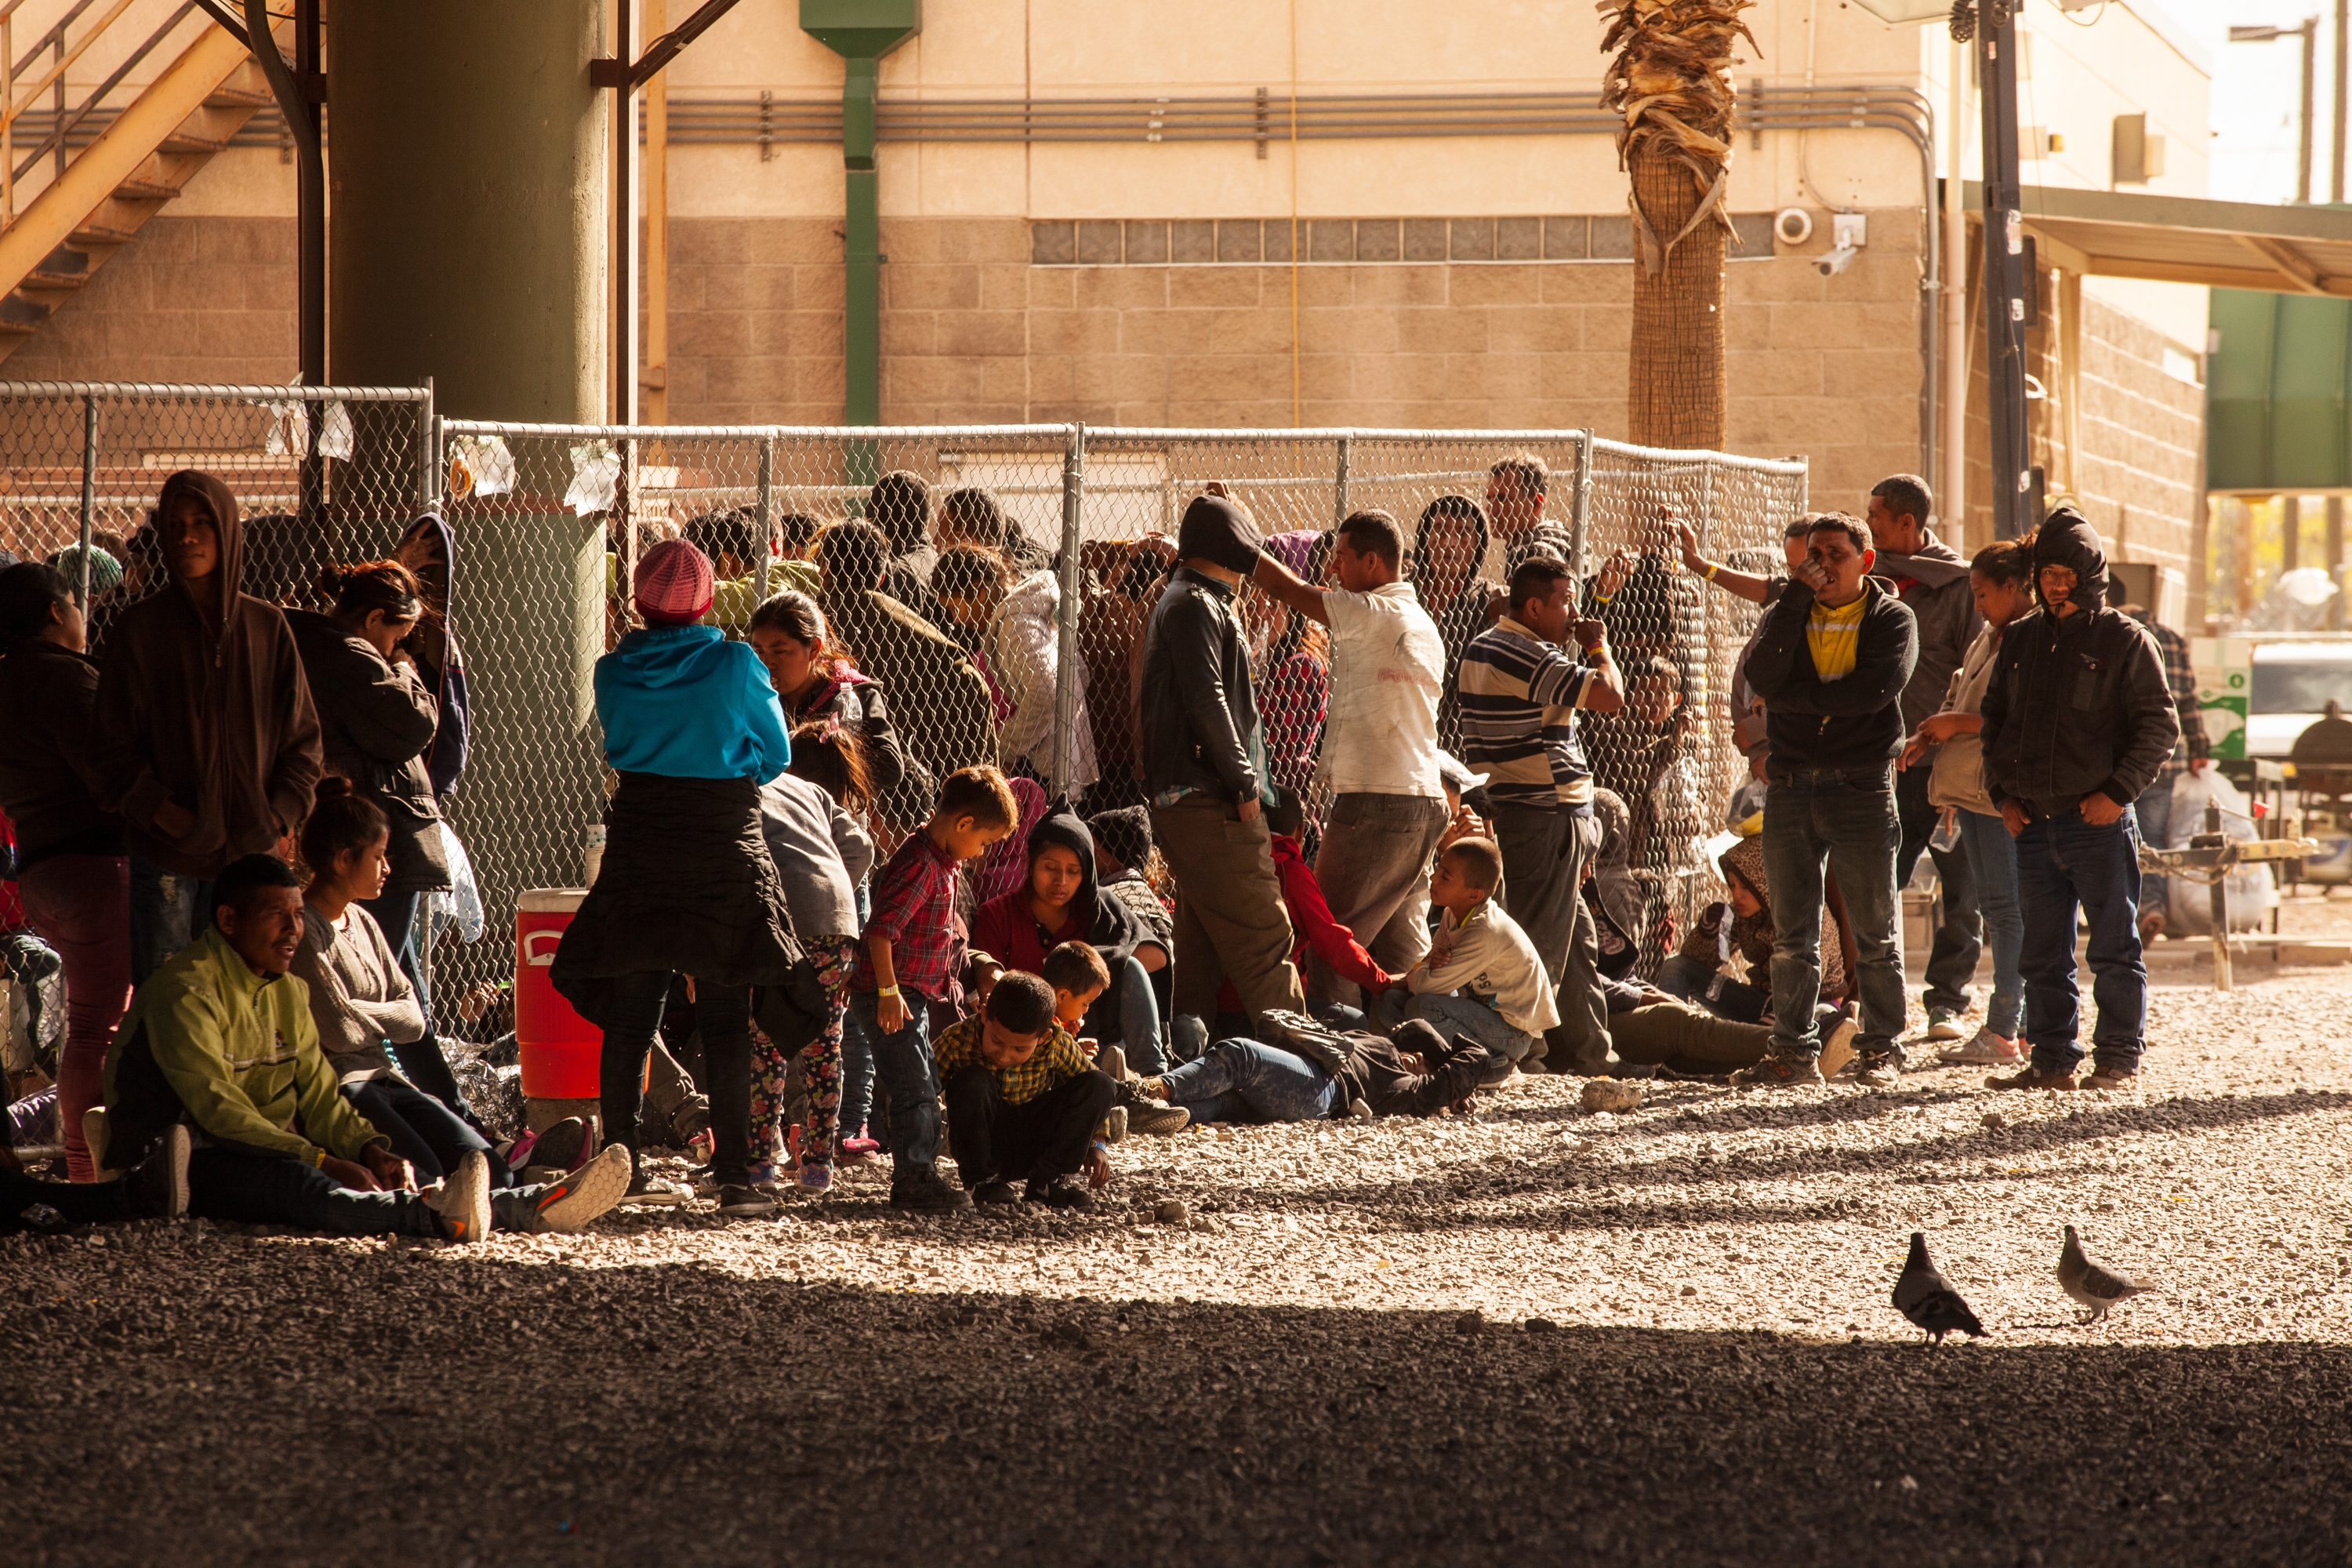 a large group of migrants gathered behind a fence underneath an overpass